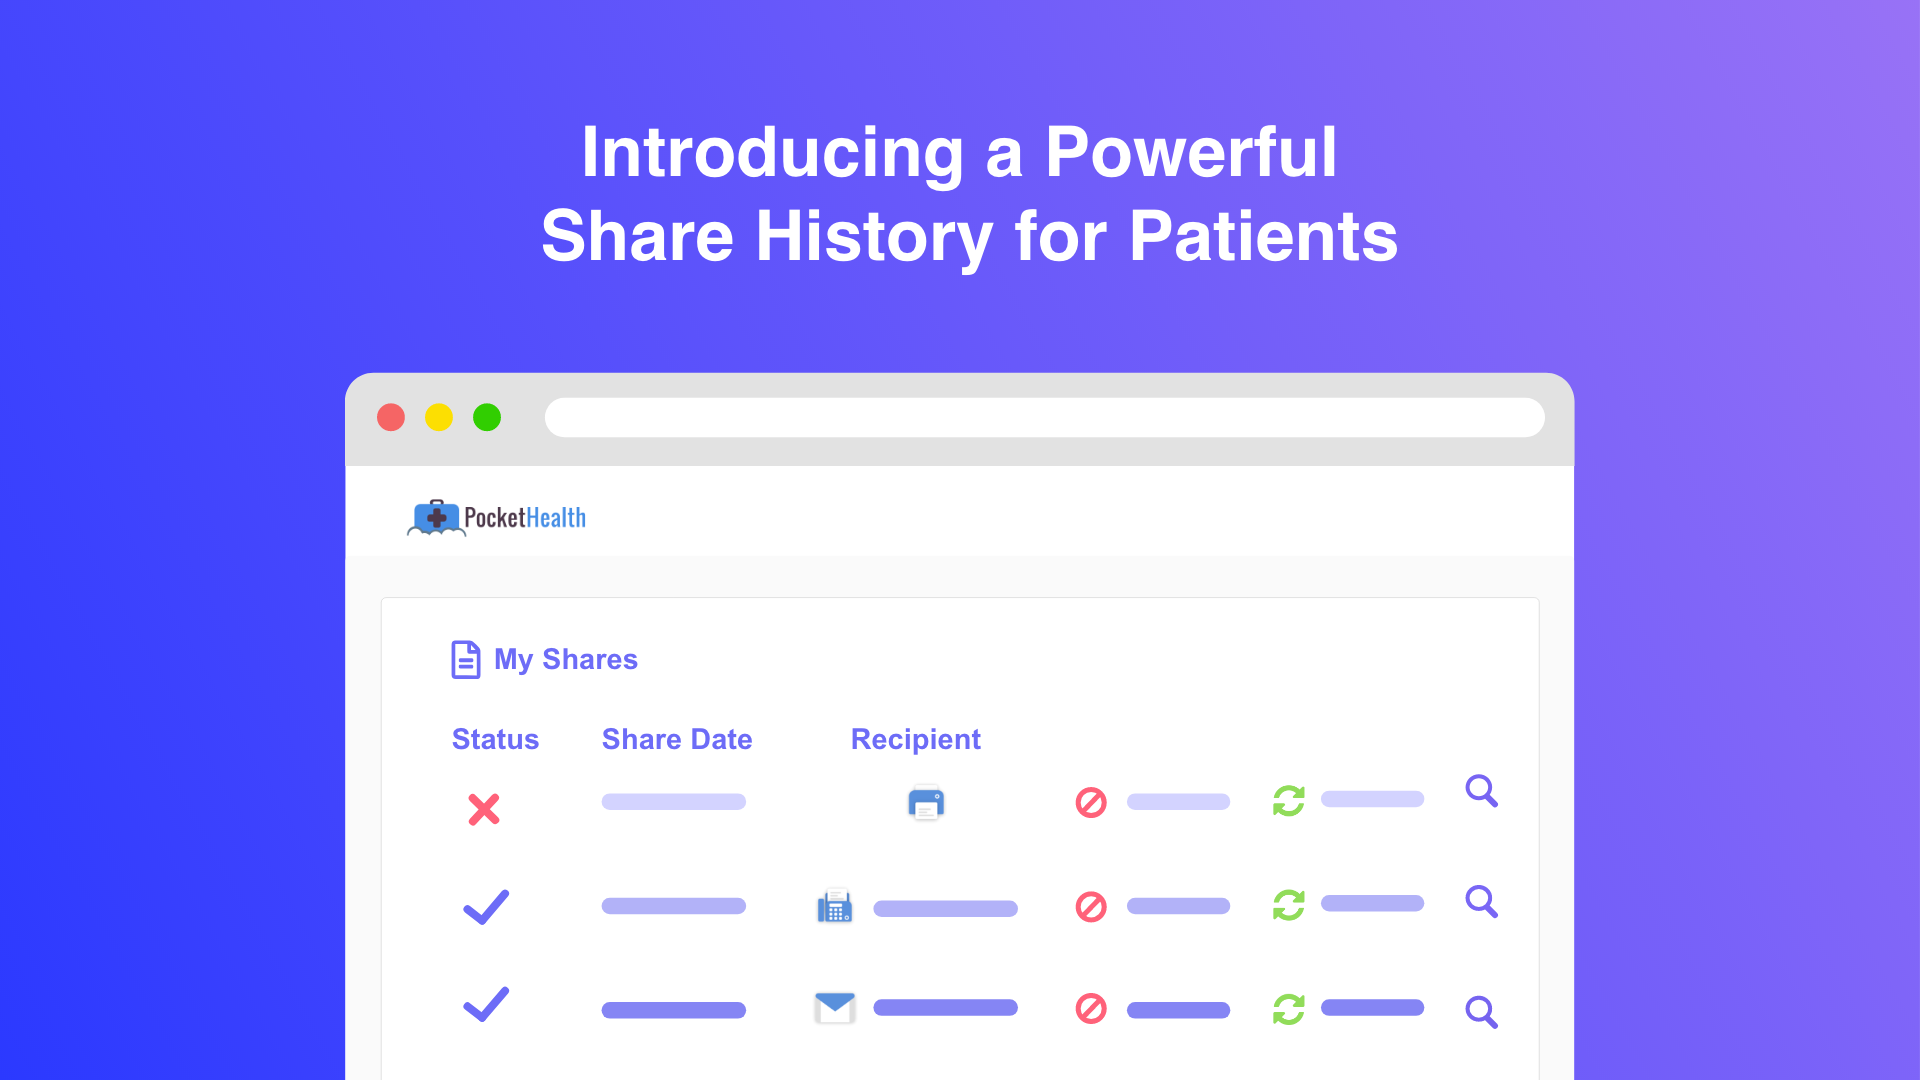 Robust Share History Empowers Patients to Instant Audit, Revoke or Resend any Past Share